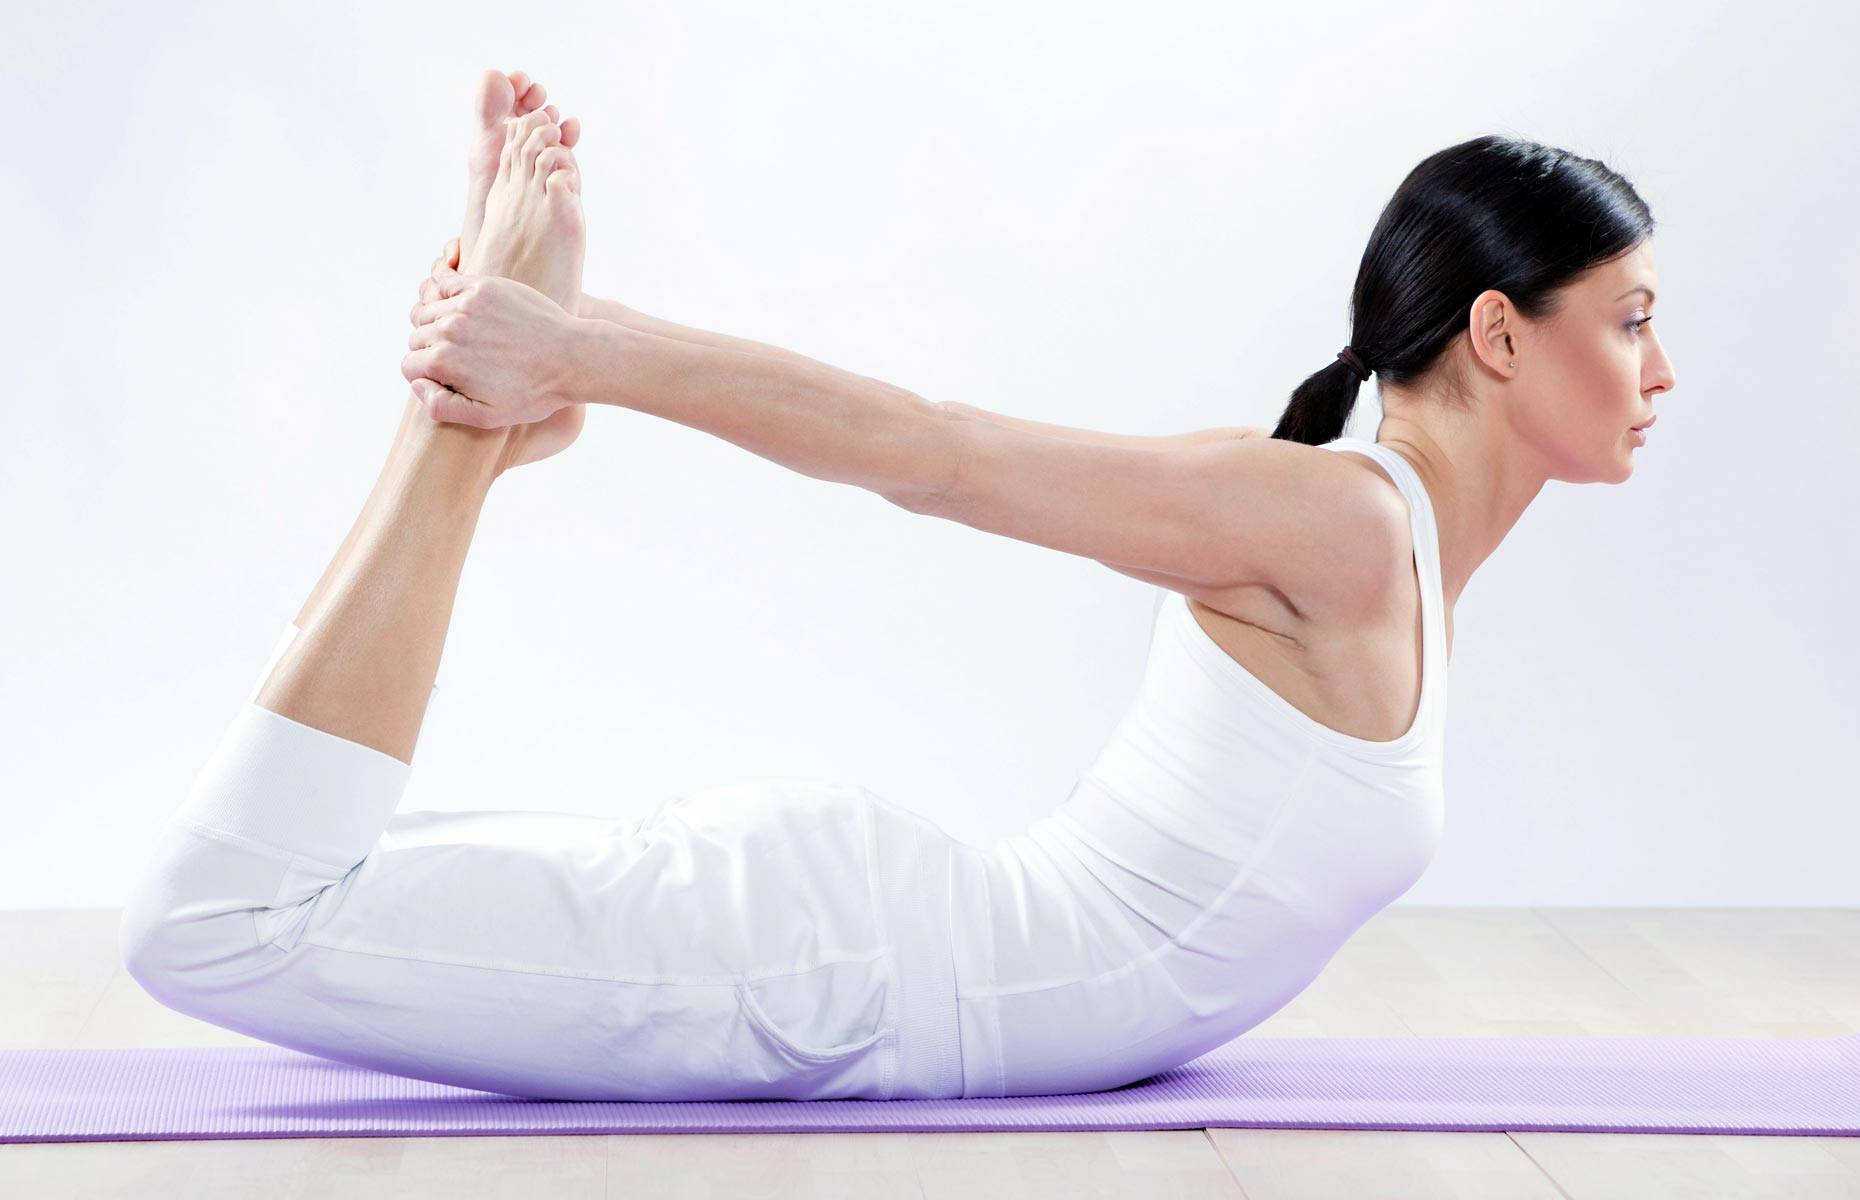 How is yoga different from stretching? 1